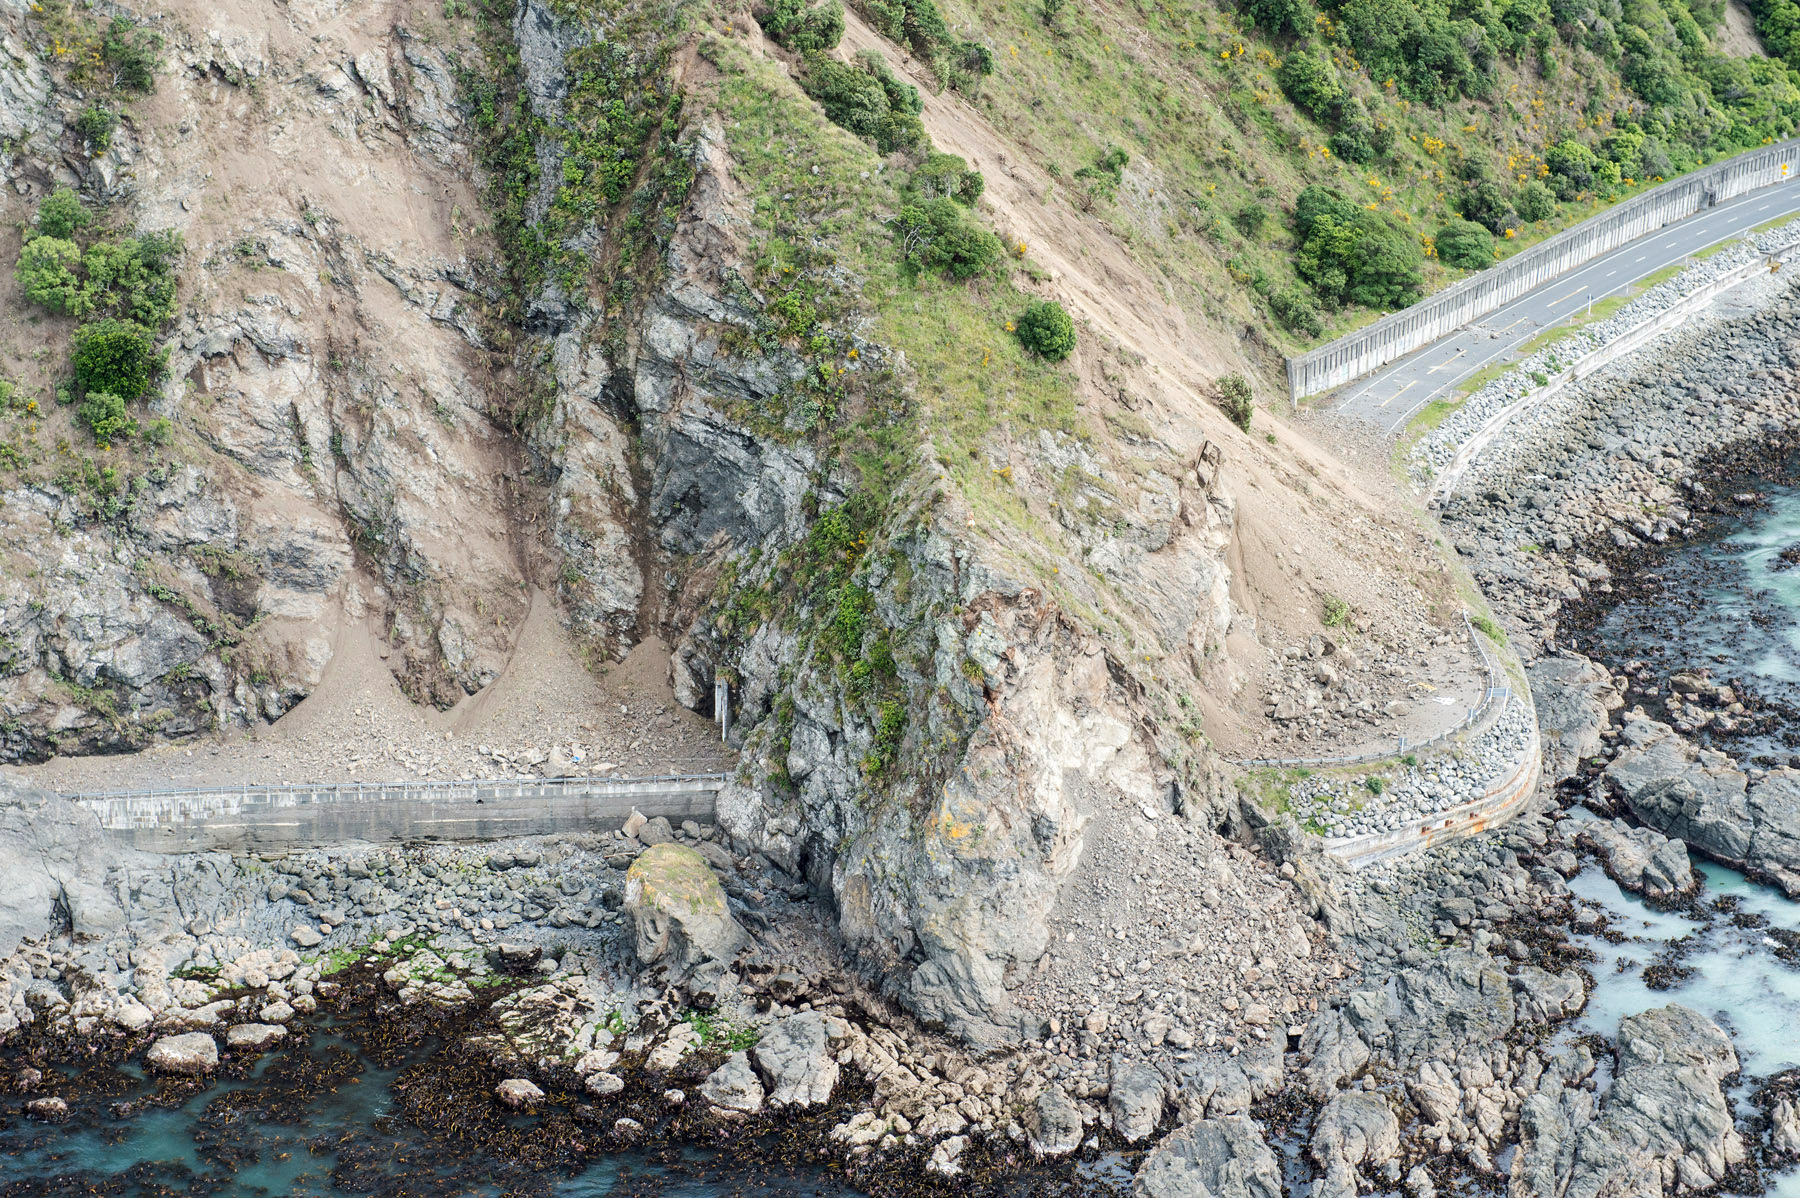 Landslide blocking road